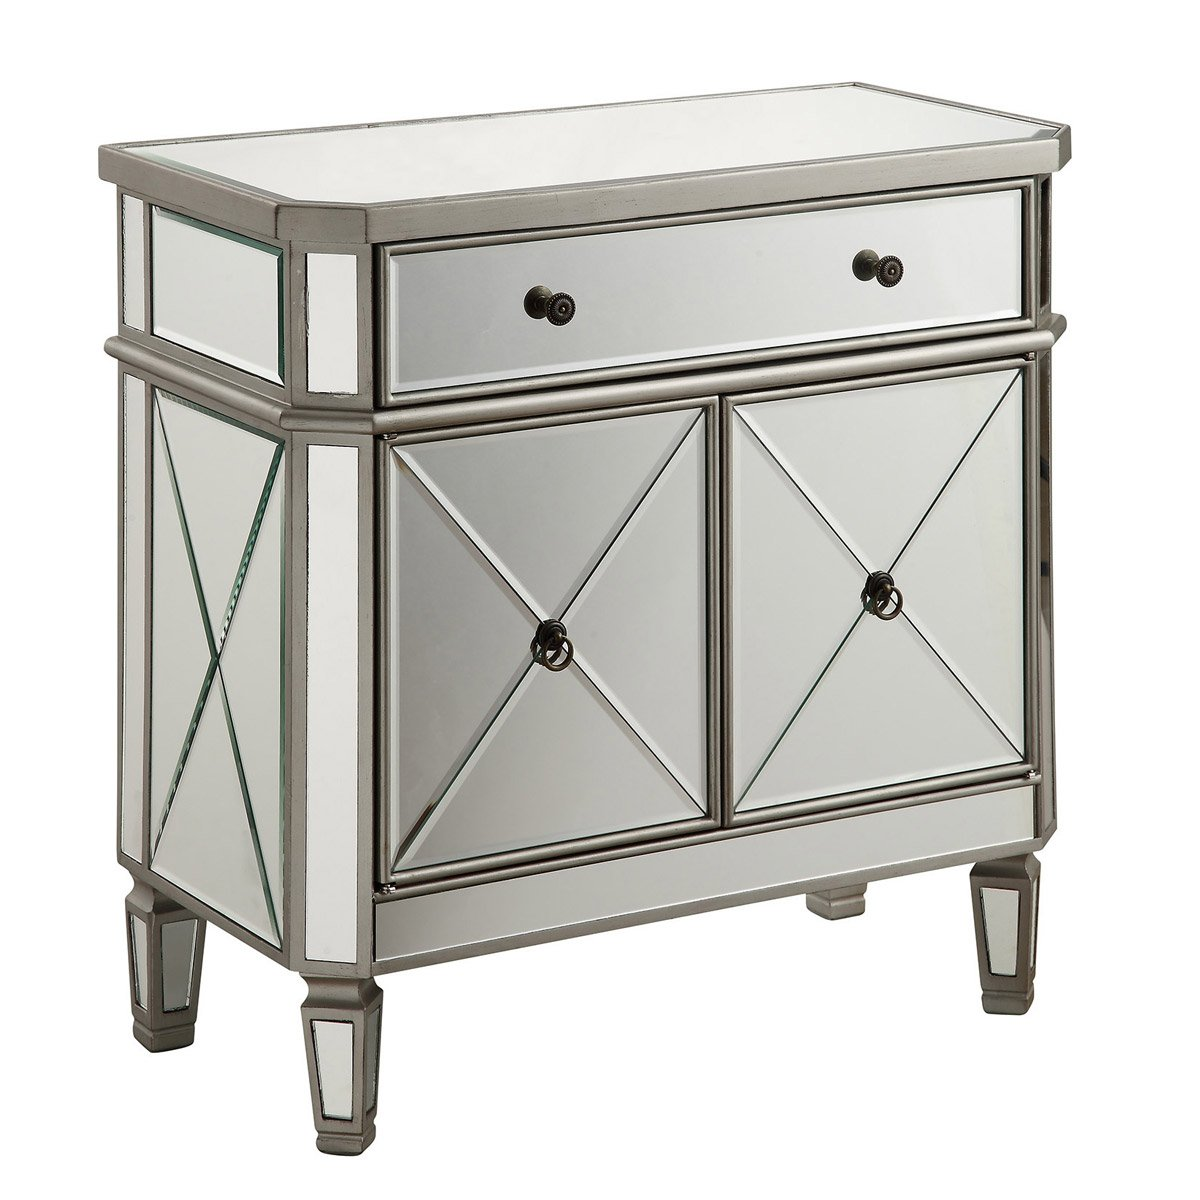 Contempo 32 X 32 1 Drawer 2 Door Cabinet - Antique Silver Finish (Mf6-1002Sc) Cabinet